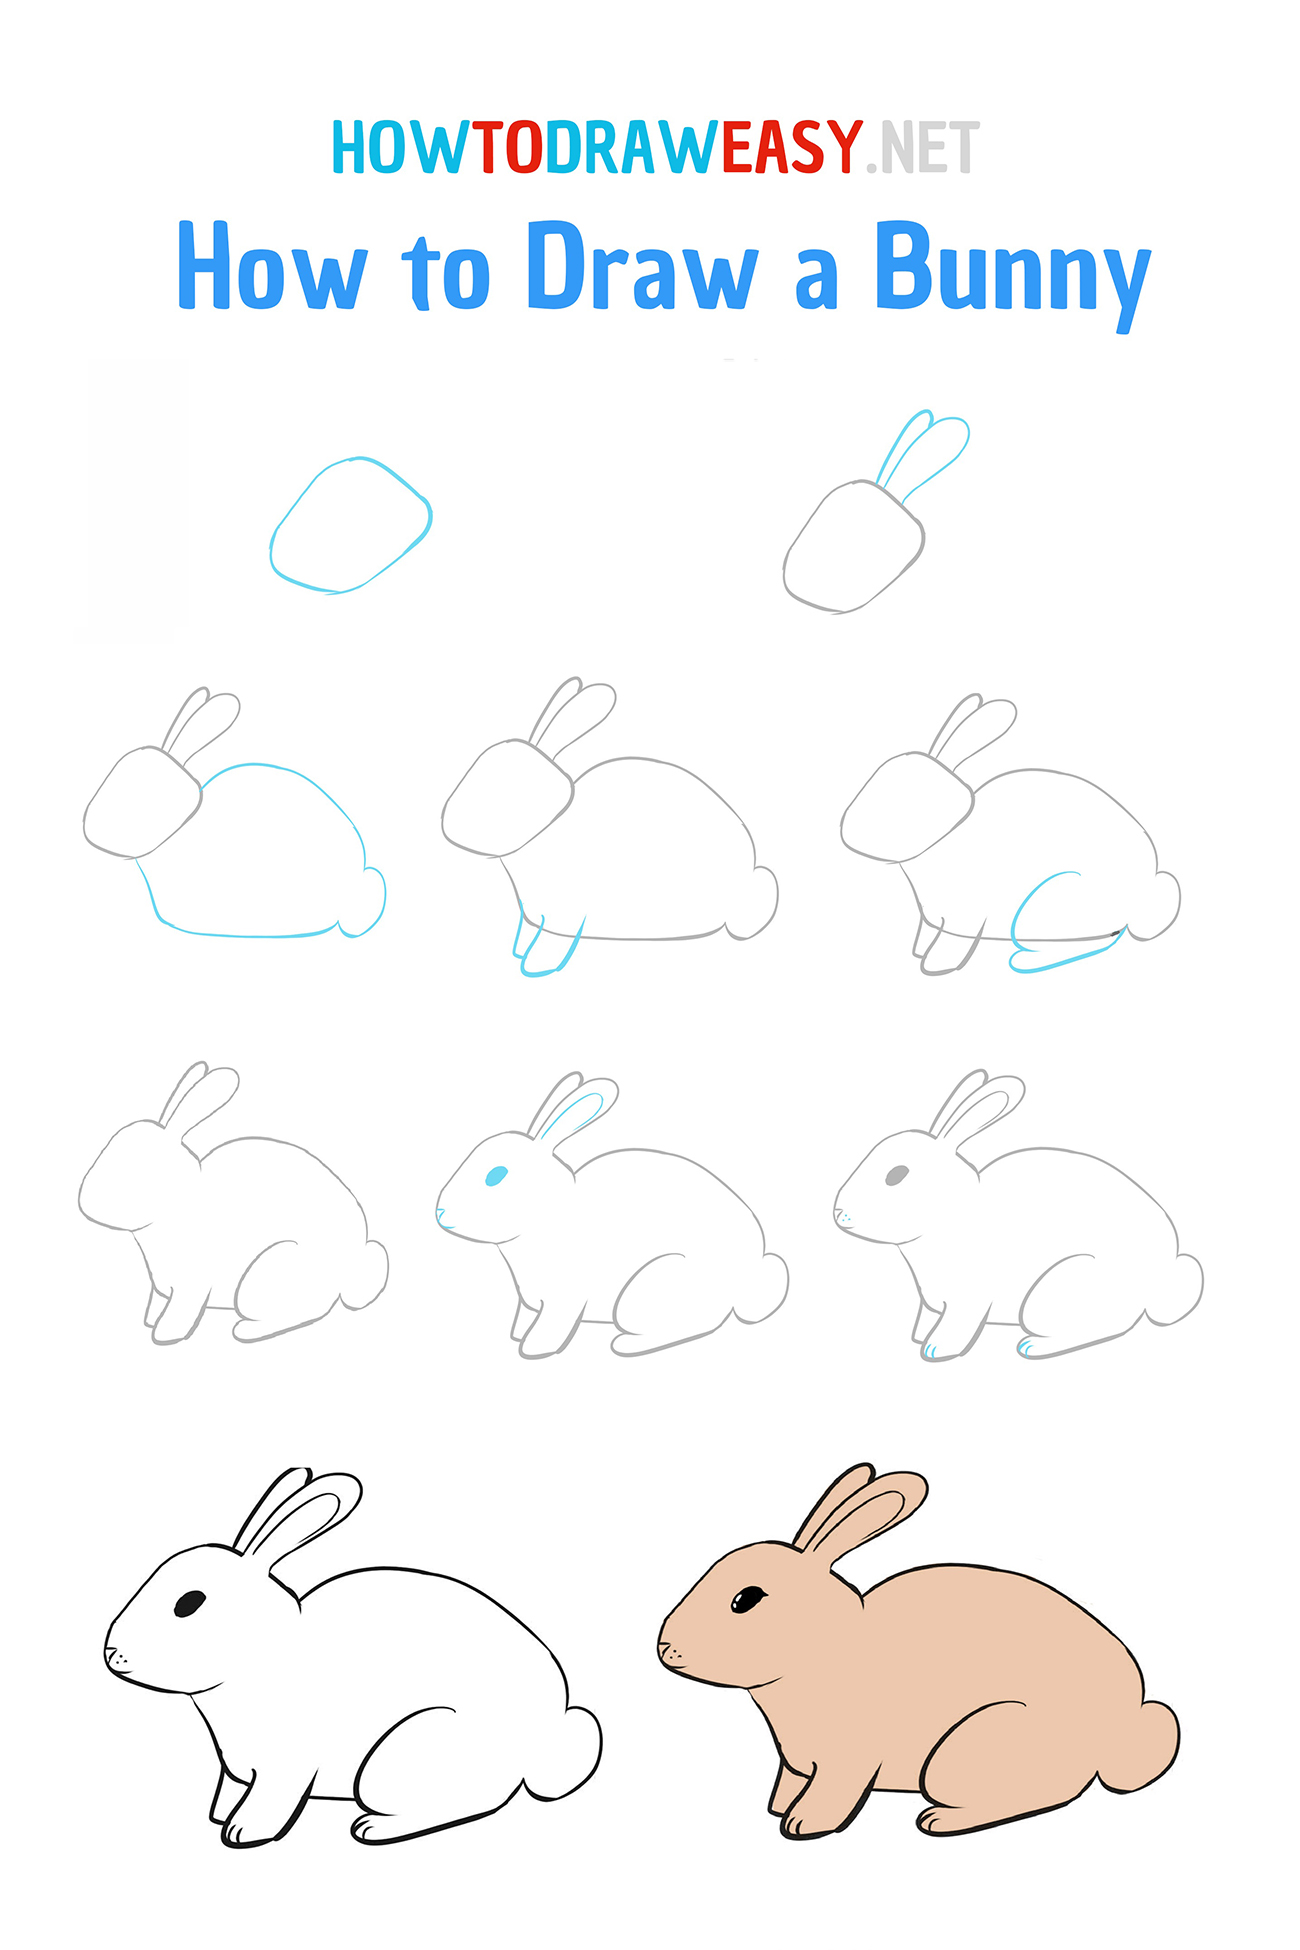 How to Draw a Bunny   How to Draw Easy